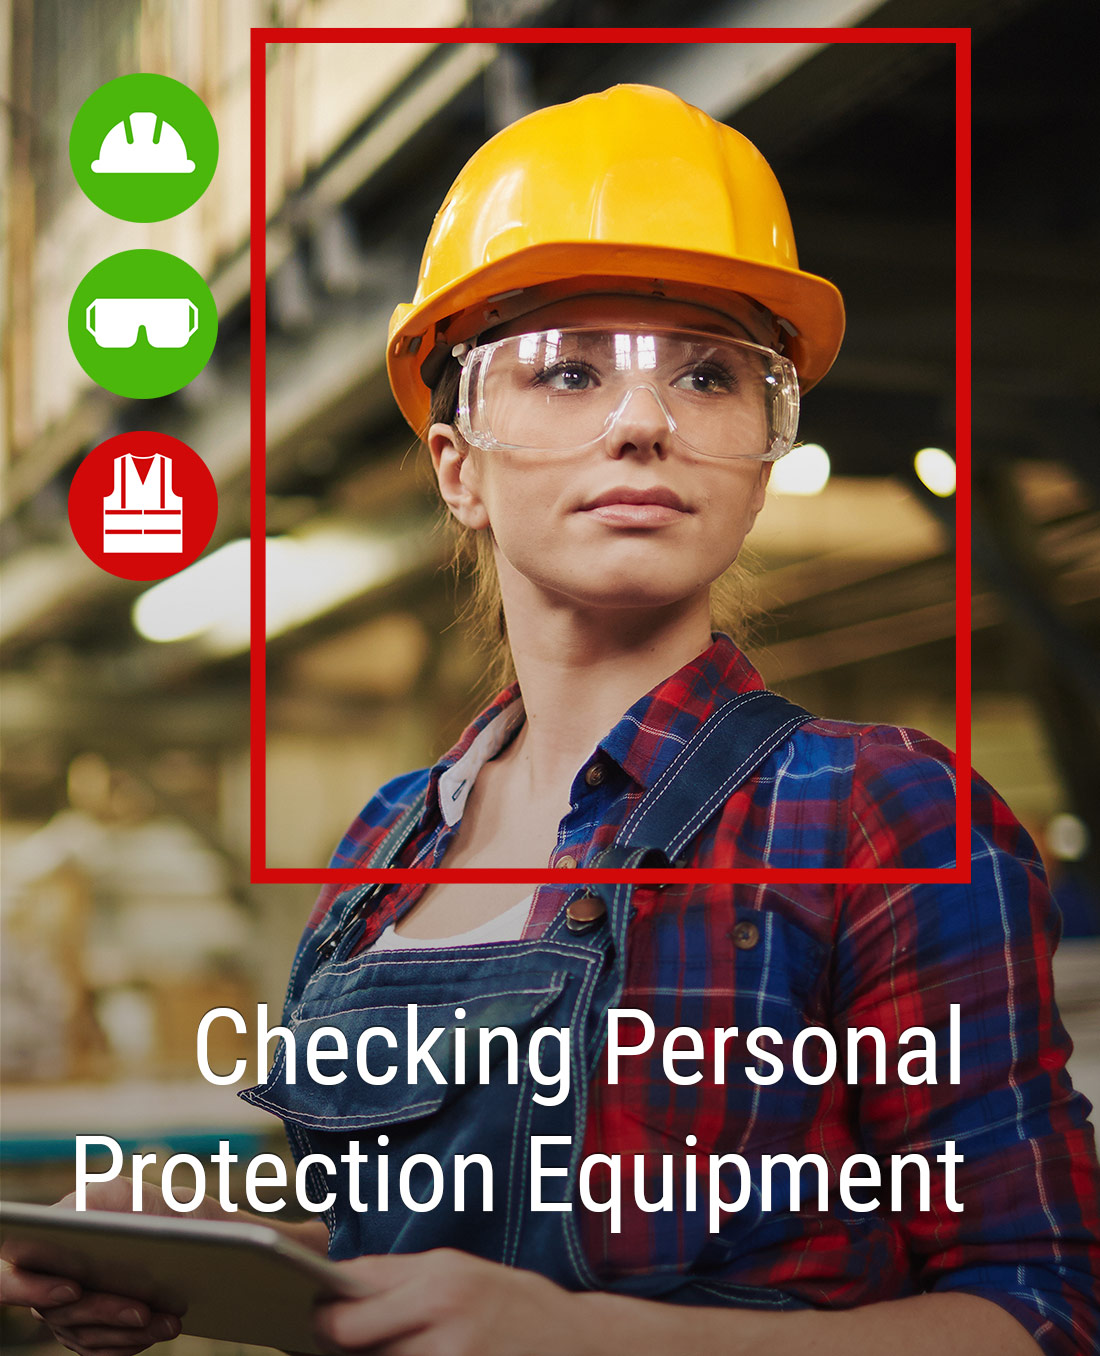 Checking Personal Protection Equipment